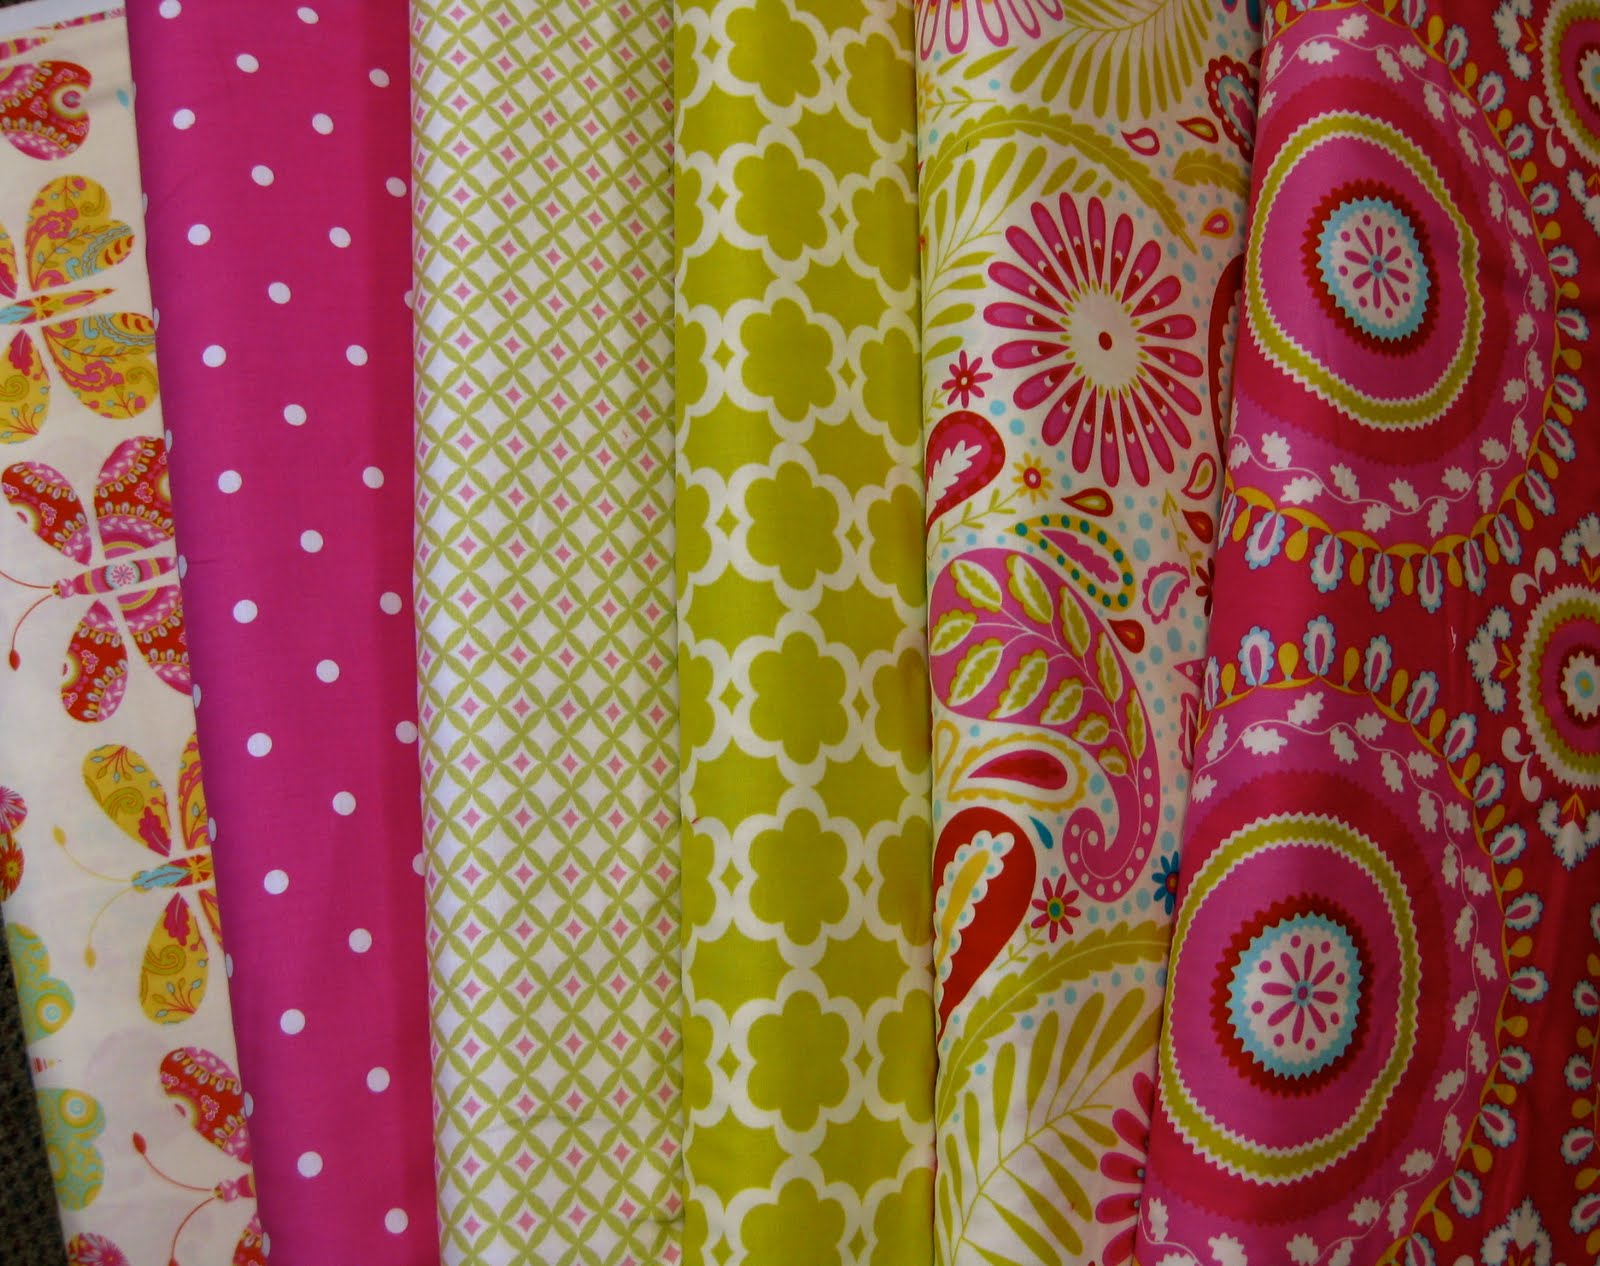 ... pink polka dot is a Maywood, Going on Thirty. The remaining fabrics